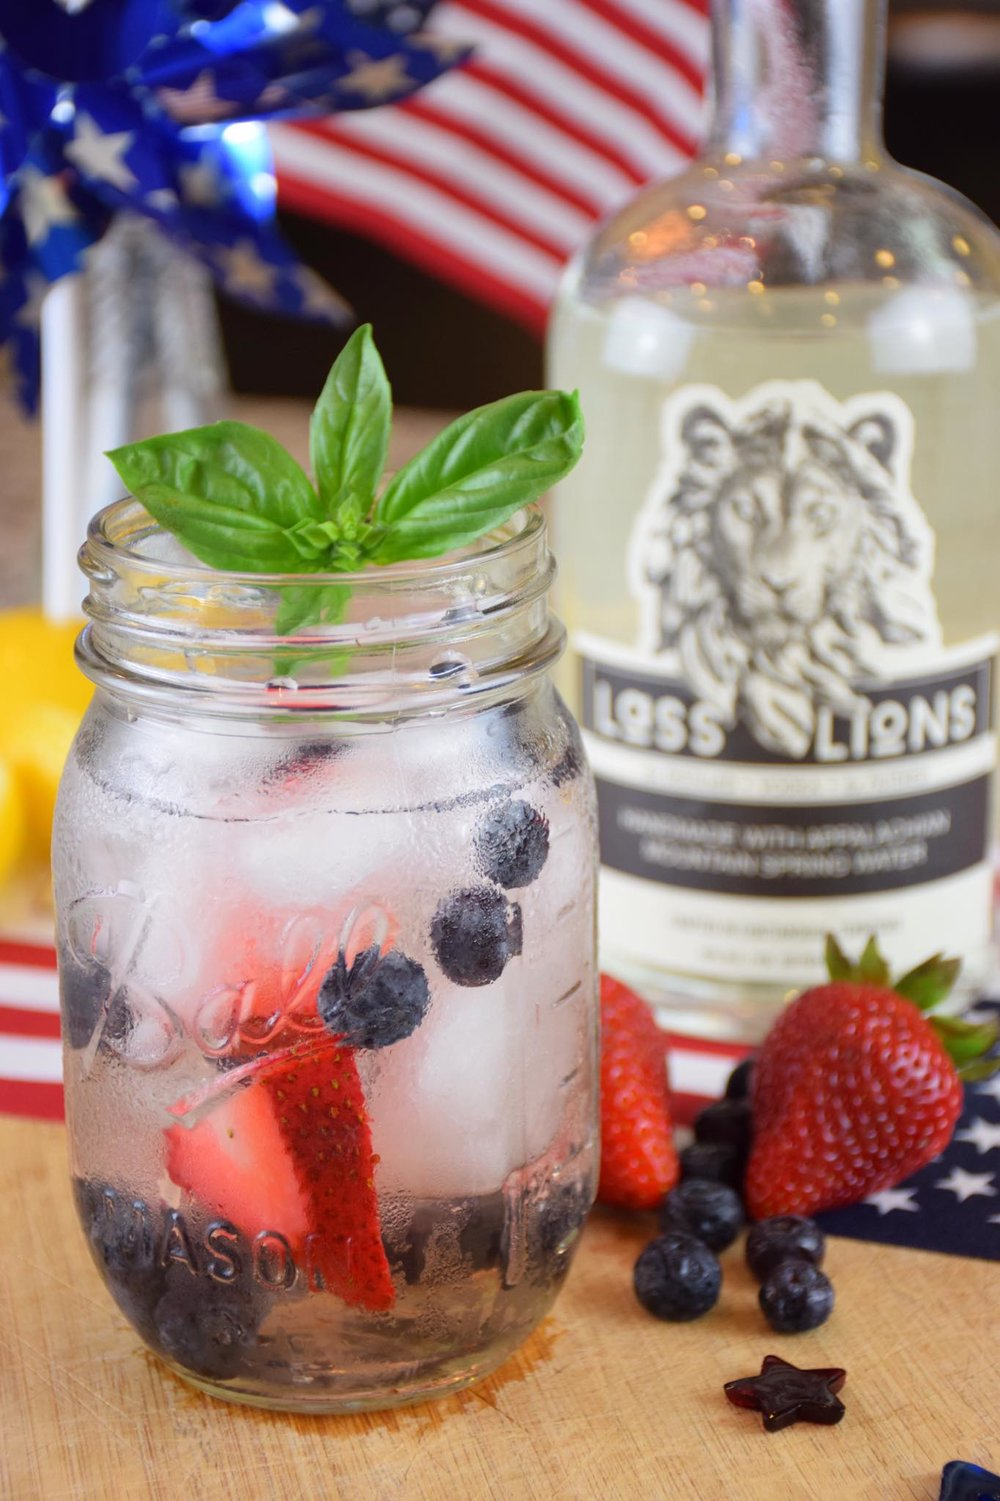 Cat's Meow aka Berry America - Ingredients:·       2 oz. Lass & Lions craft vodka·       1 oz. part Elderflower Liqueur·       ½ oz. fresh lemon juice·       splash simple syrup·       muddled strawberry and blueberry·       sparkling roséCraft: Use a mason jar.  Fill shaker with ice and combine ingredients (except sparkling rosé).  Shake then strain over fresh ice in a mason jar.  Top with sparkling rosé.  Garnish with herb, mint, strawberry, or lemon.